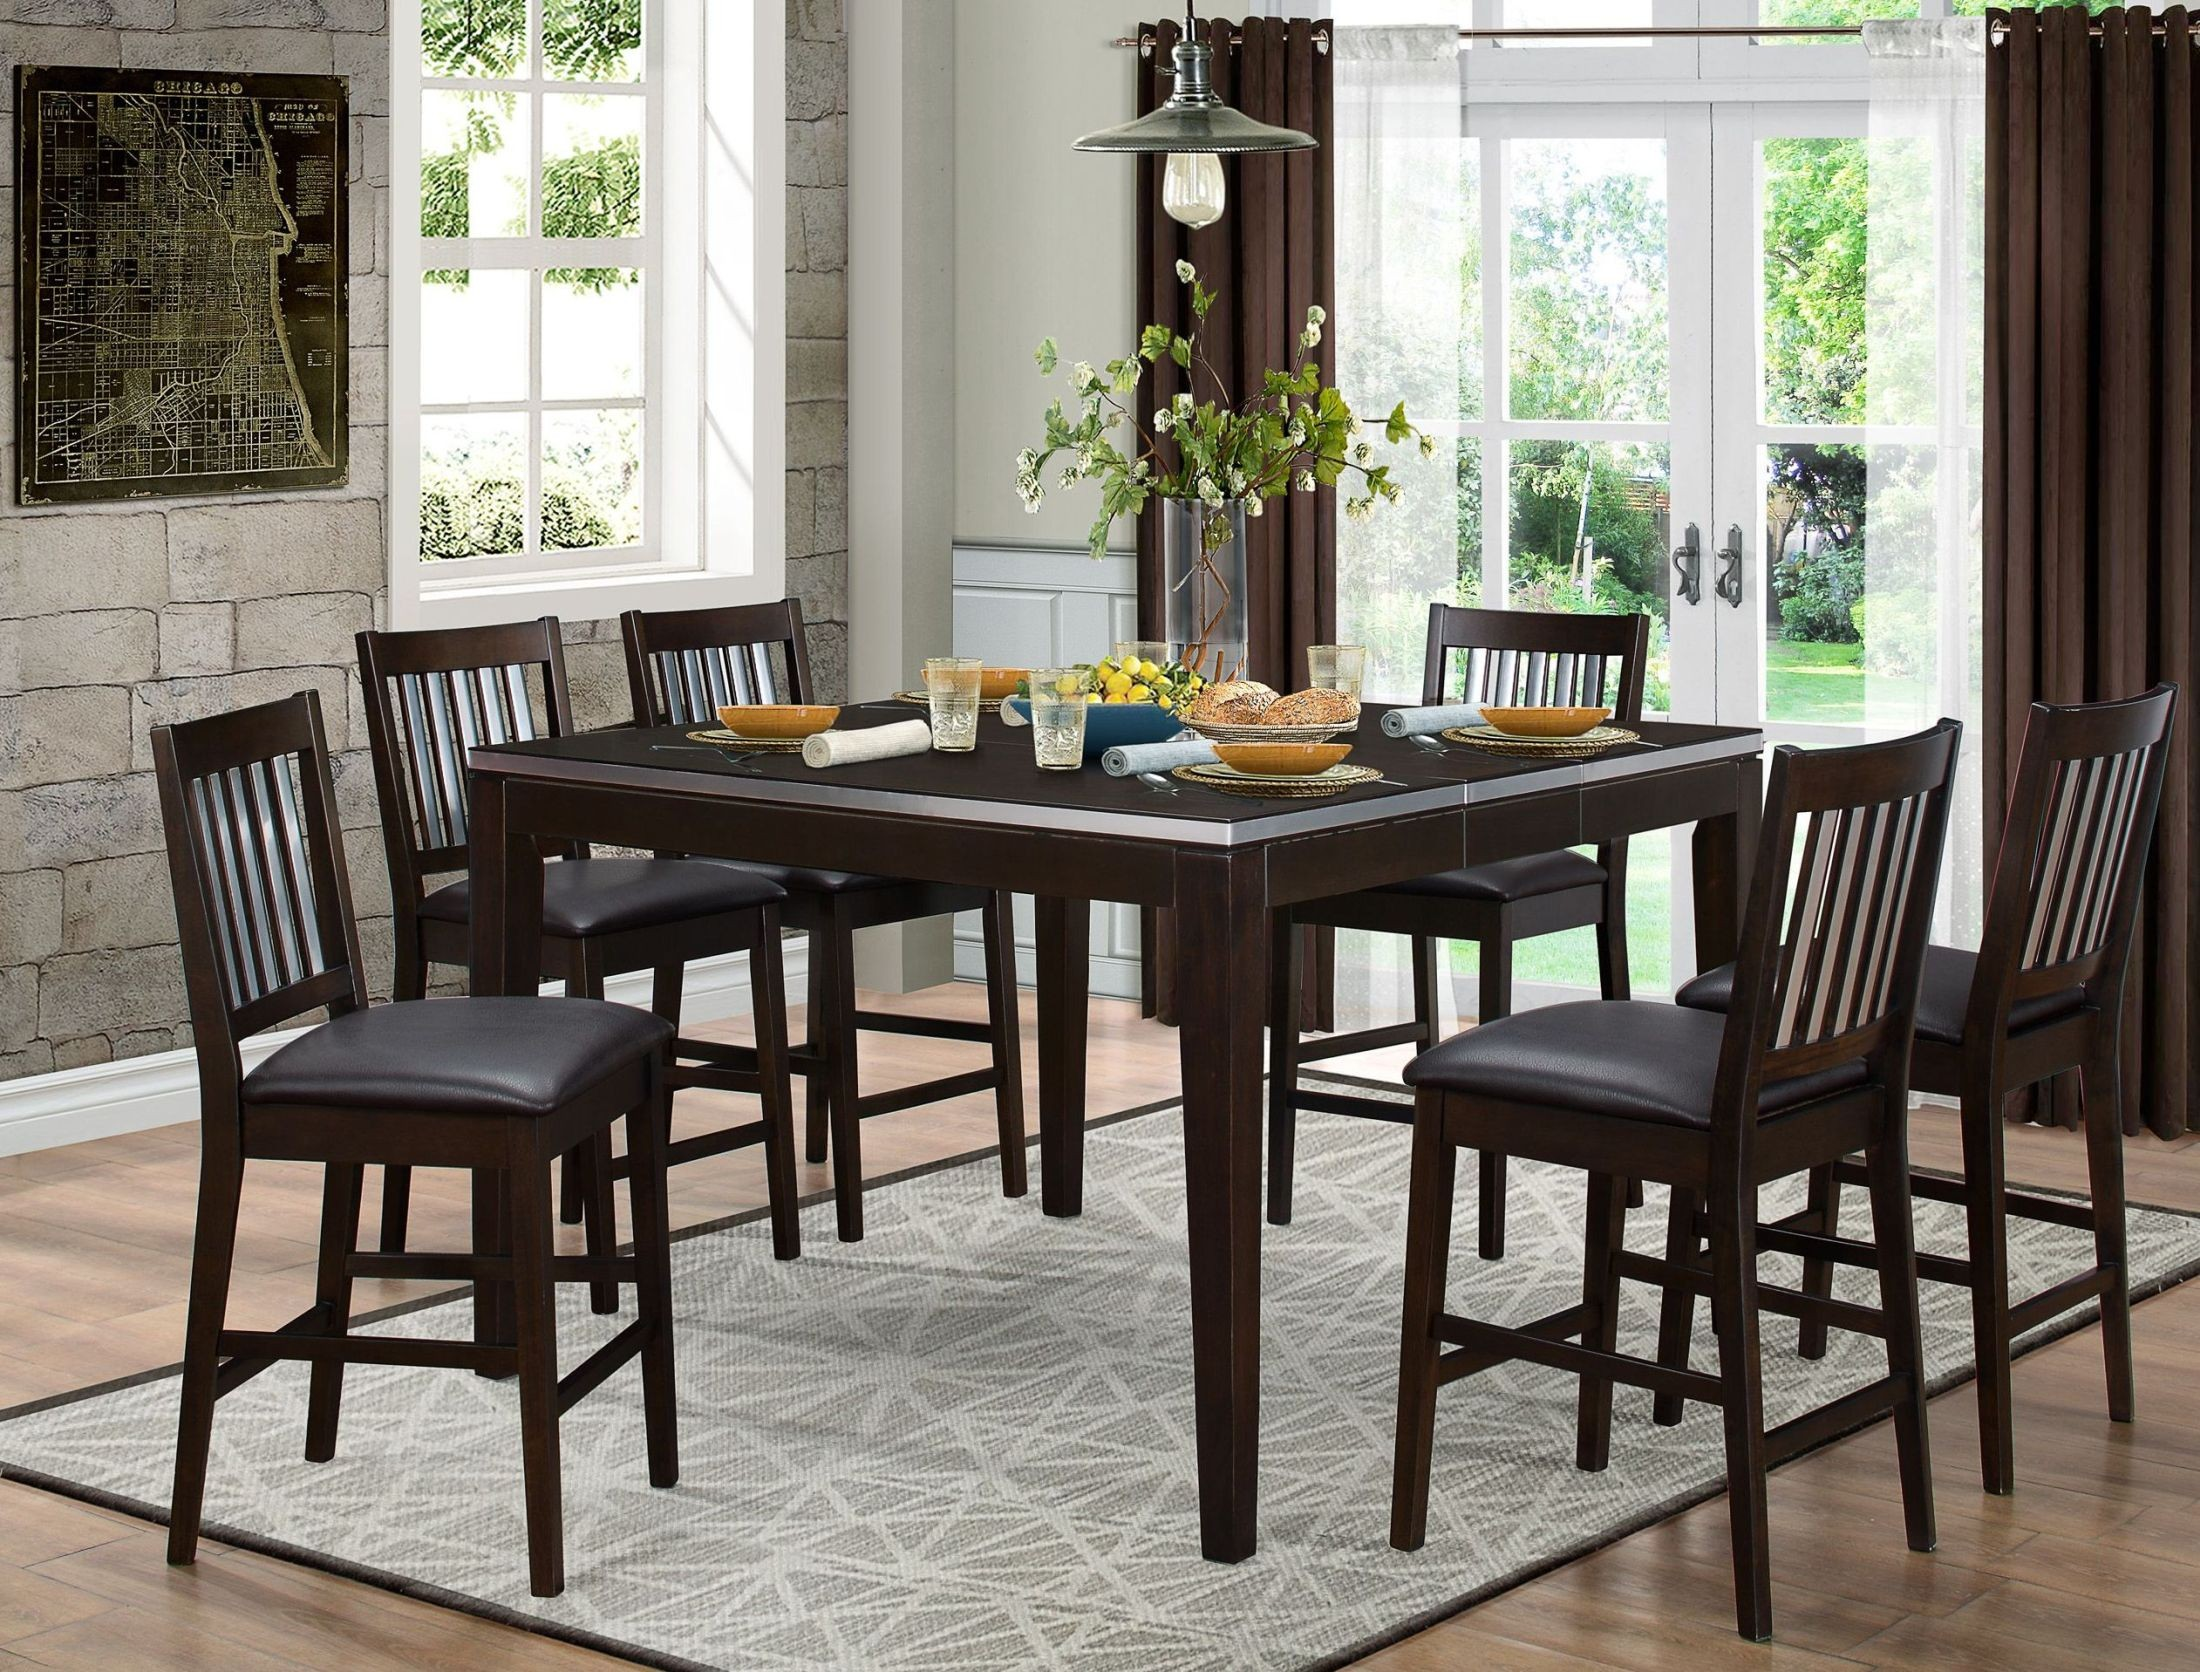 Pasco brown counter height dining room set 5401 36 for Brown dining room set